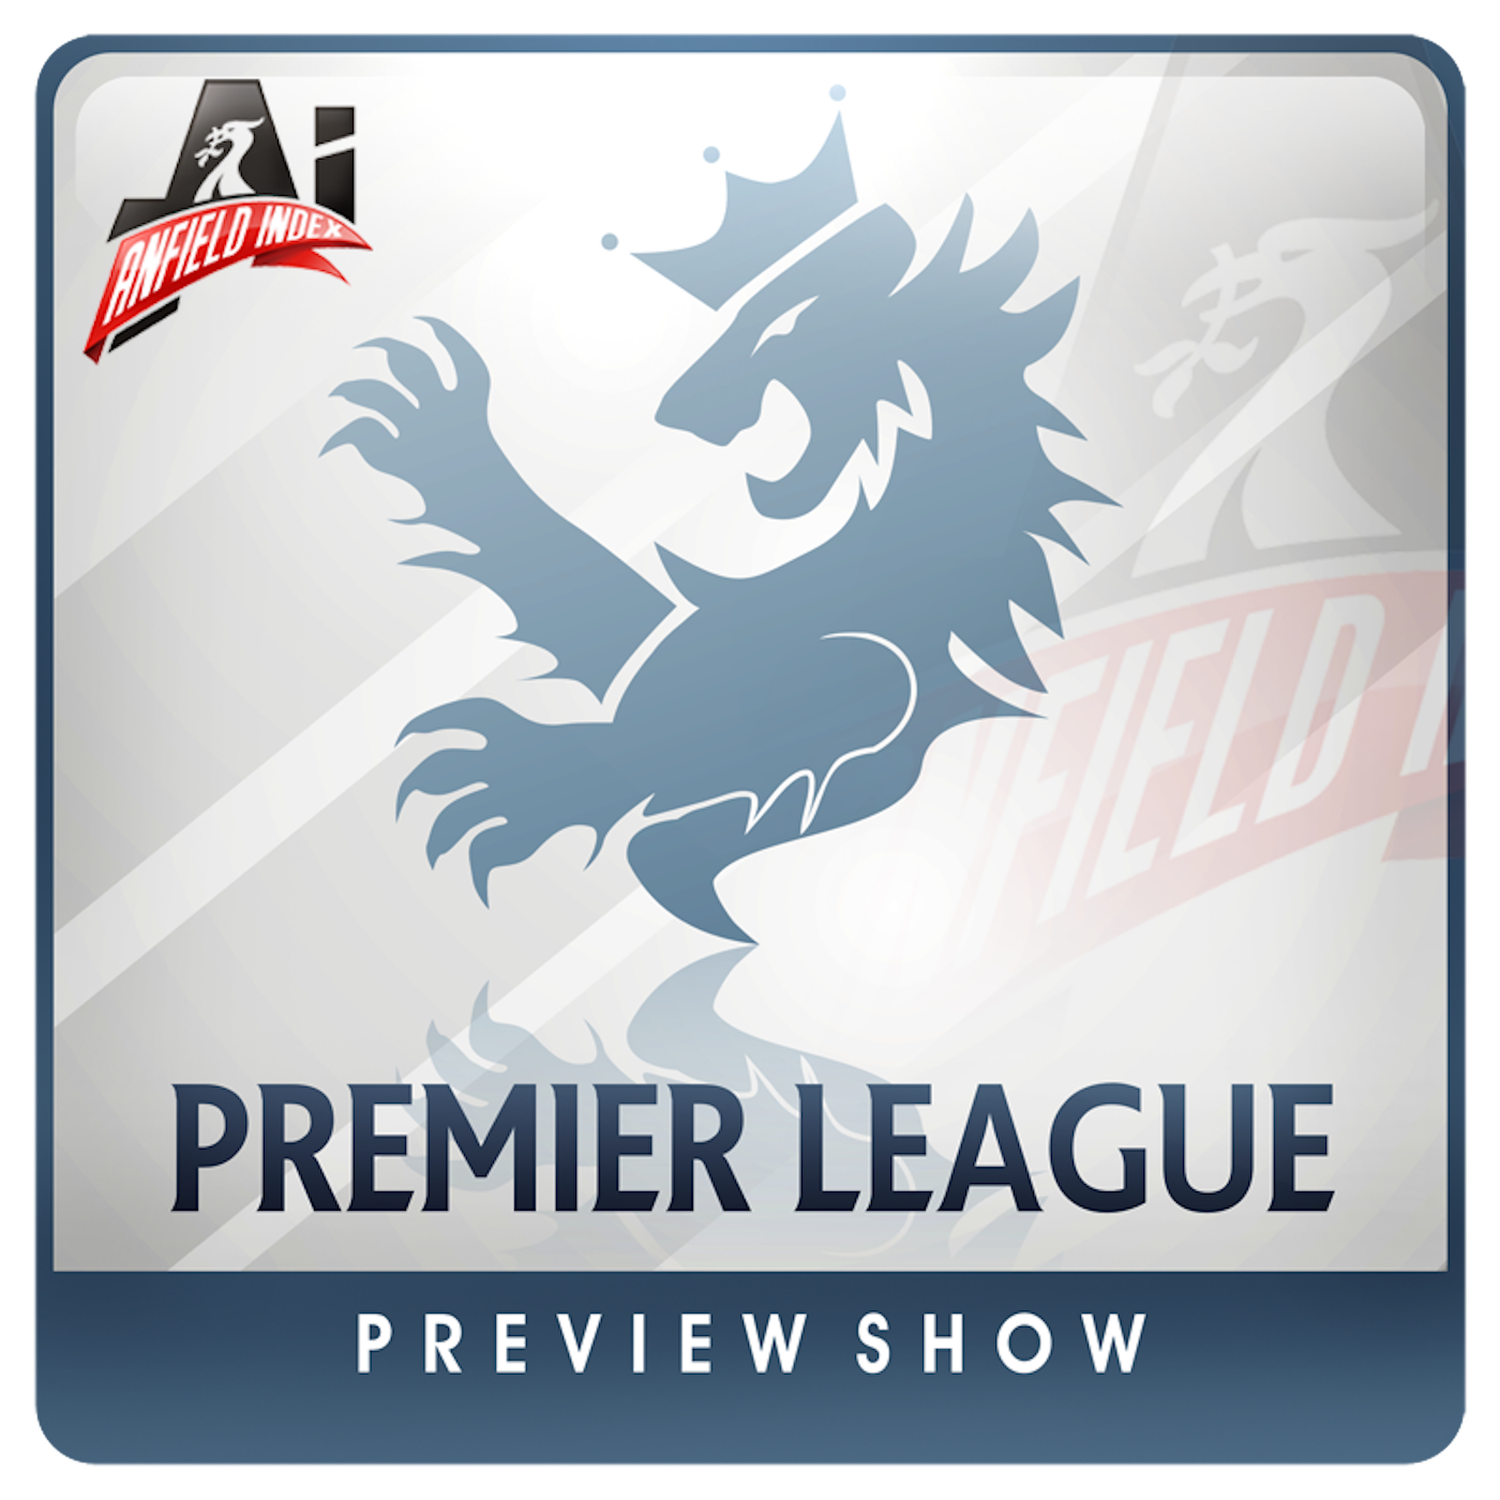 Liverpool News When Did The Premier League S Finest: Liverpool FC Opinion, Stats And Podcasts